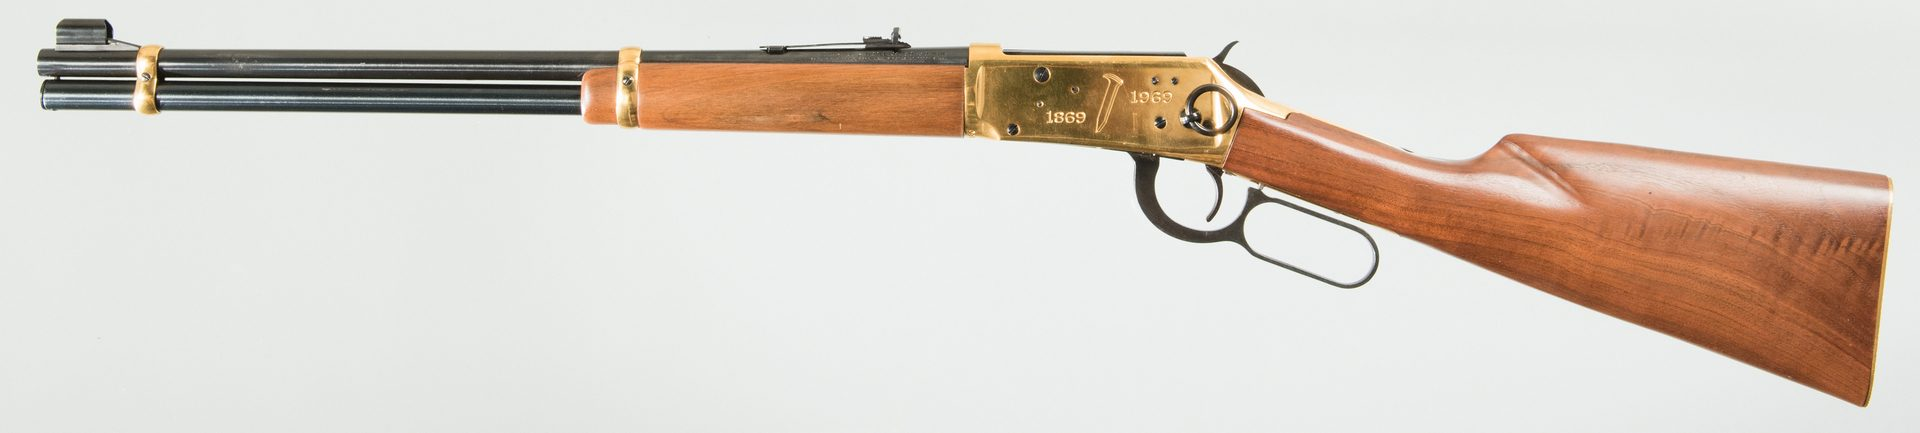 Lot 828: Winchester 94 Commemorative Lever Action rifle, 30-30